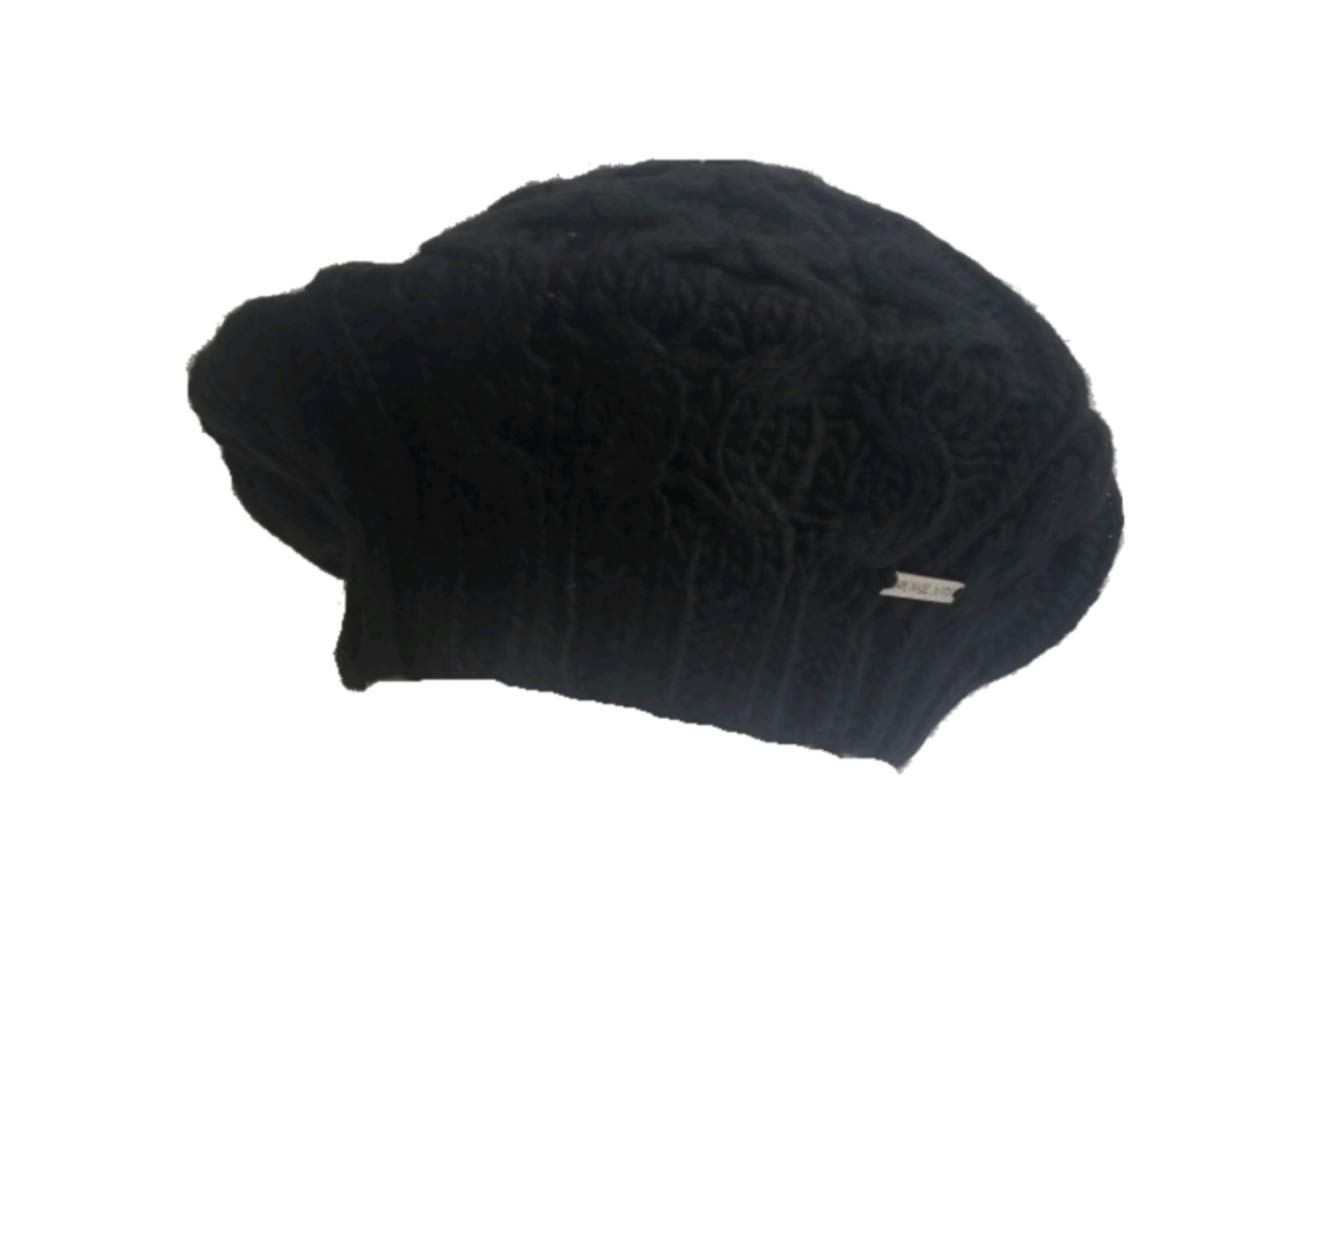 Michael Kors Cable Knit Beret, Black